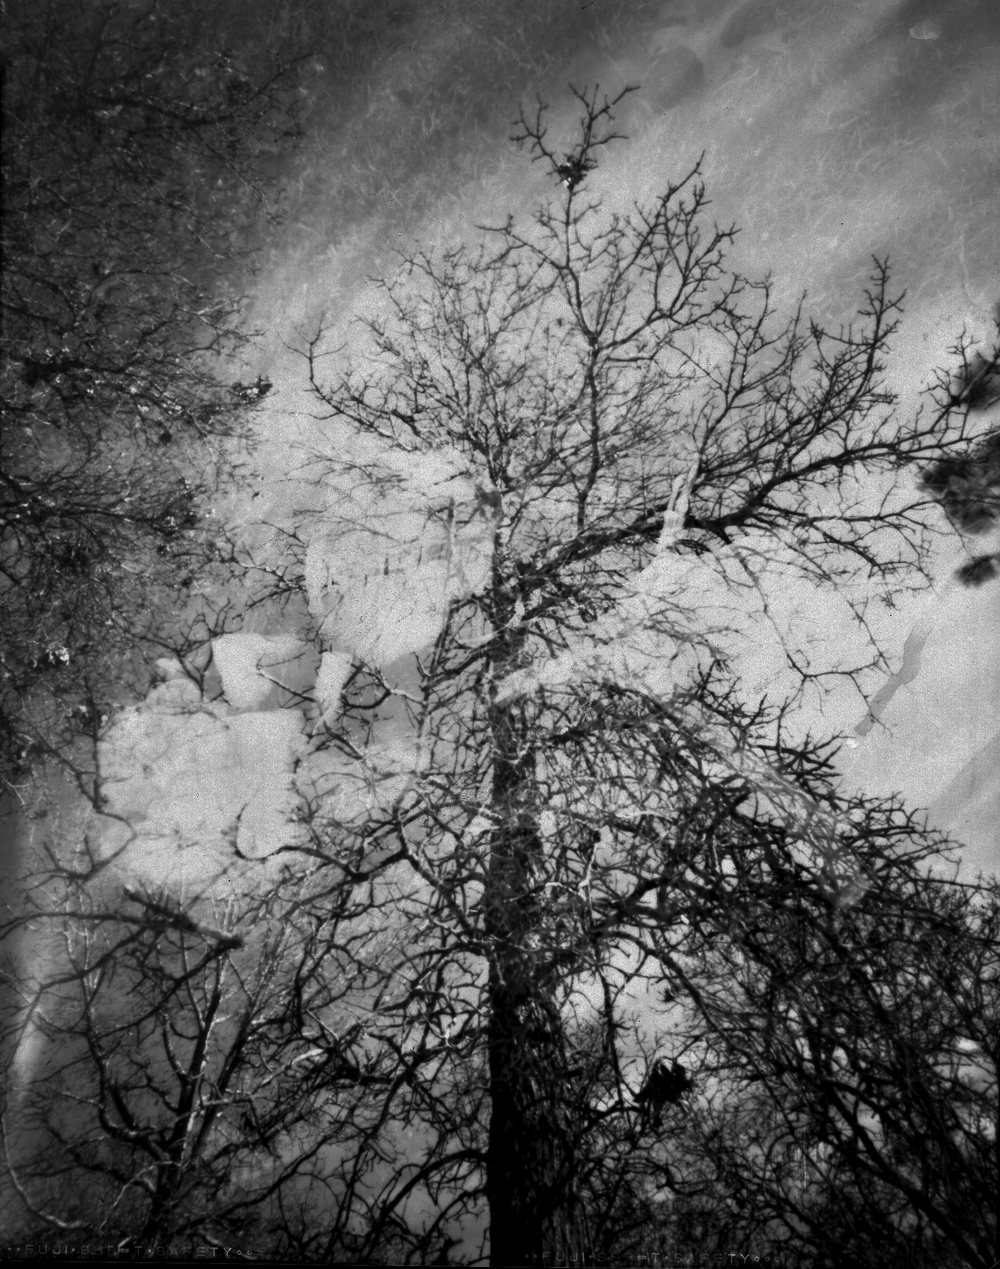 Free formed funkified filth | Home made 8x10 pinhole | Fuji green x-ray | Bobby Kulik